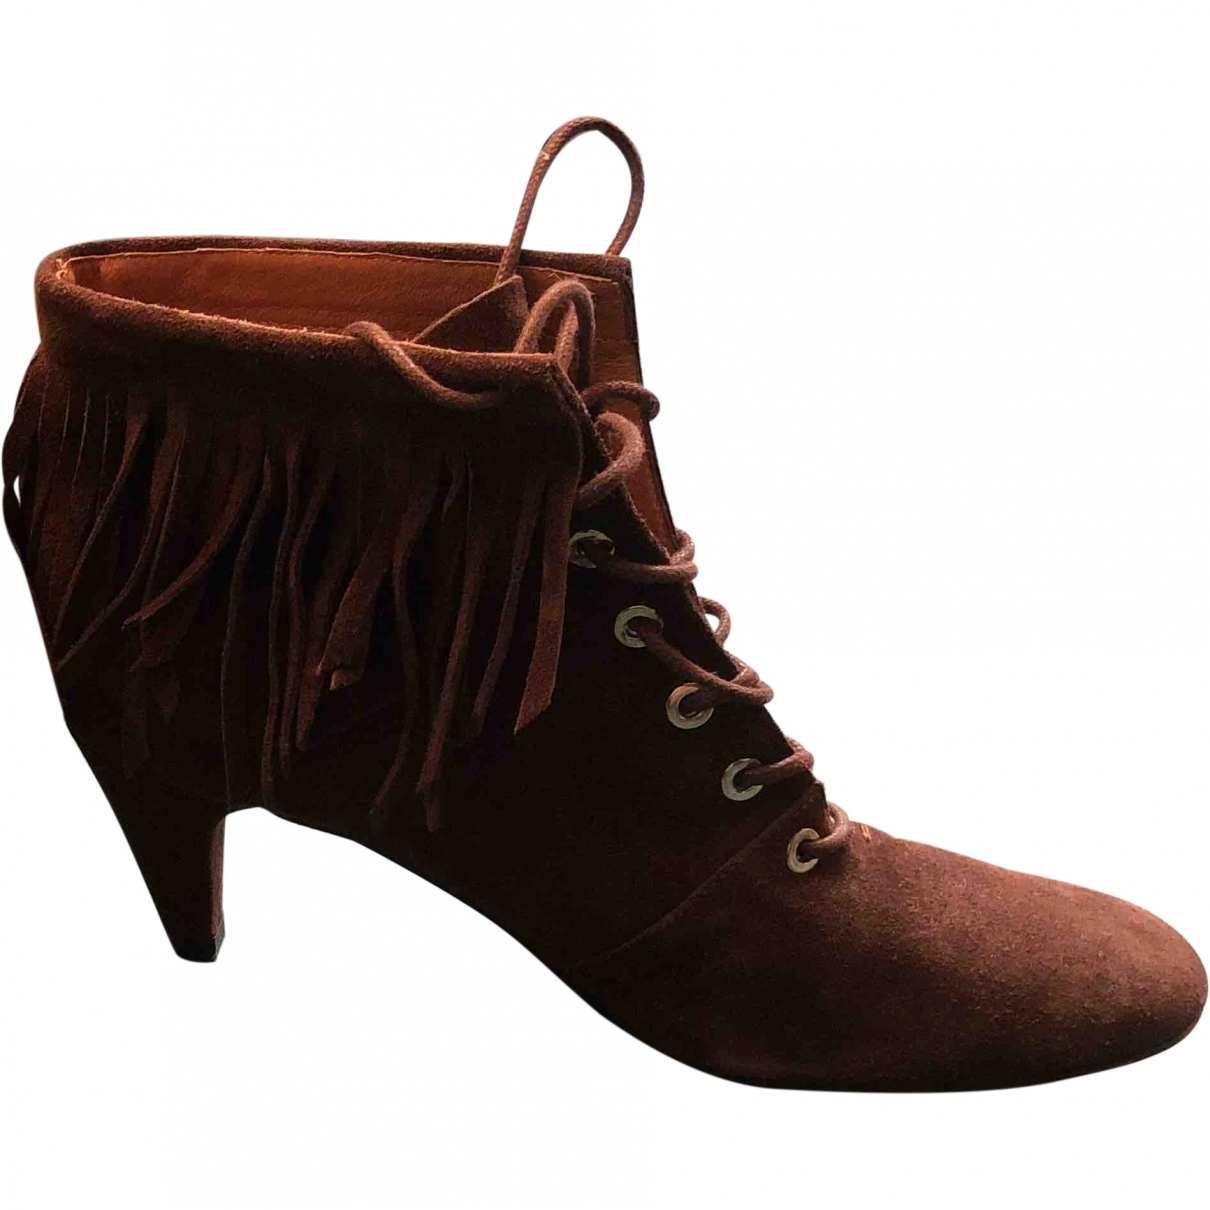 Maje \N Brown Suede Ankle boots for Women 38 EU